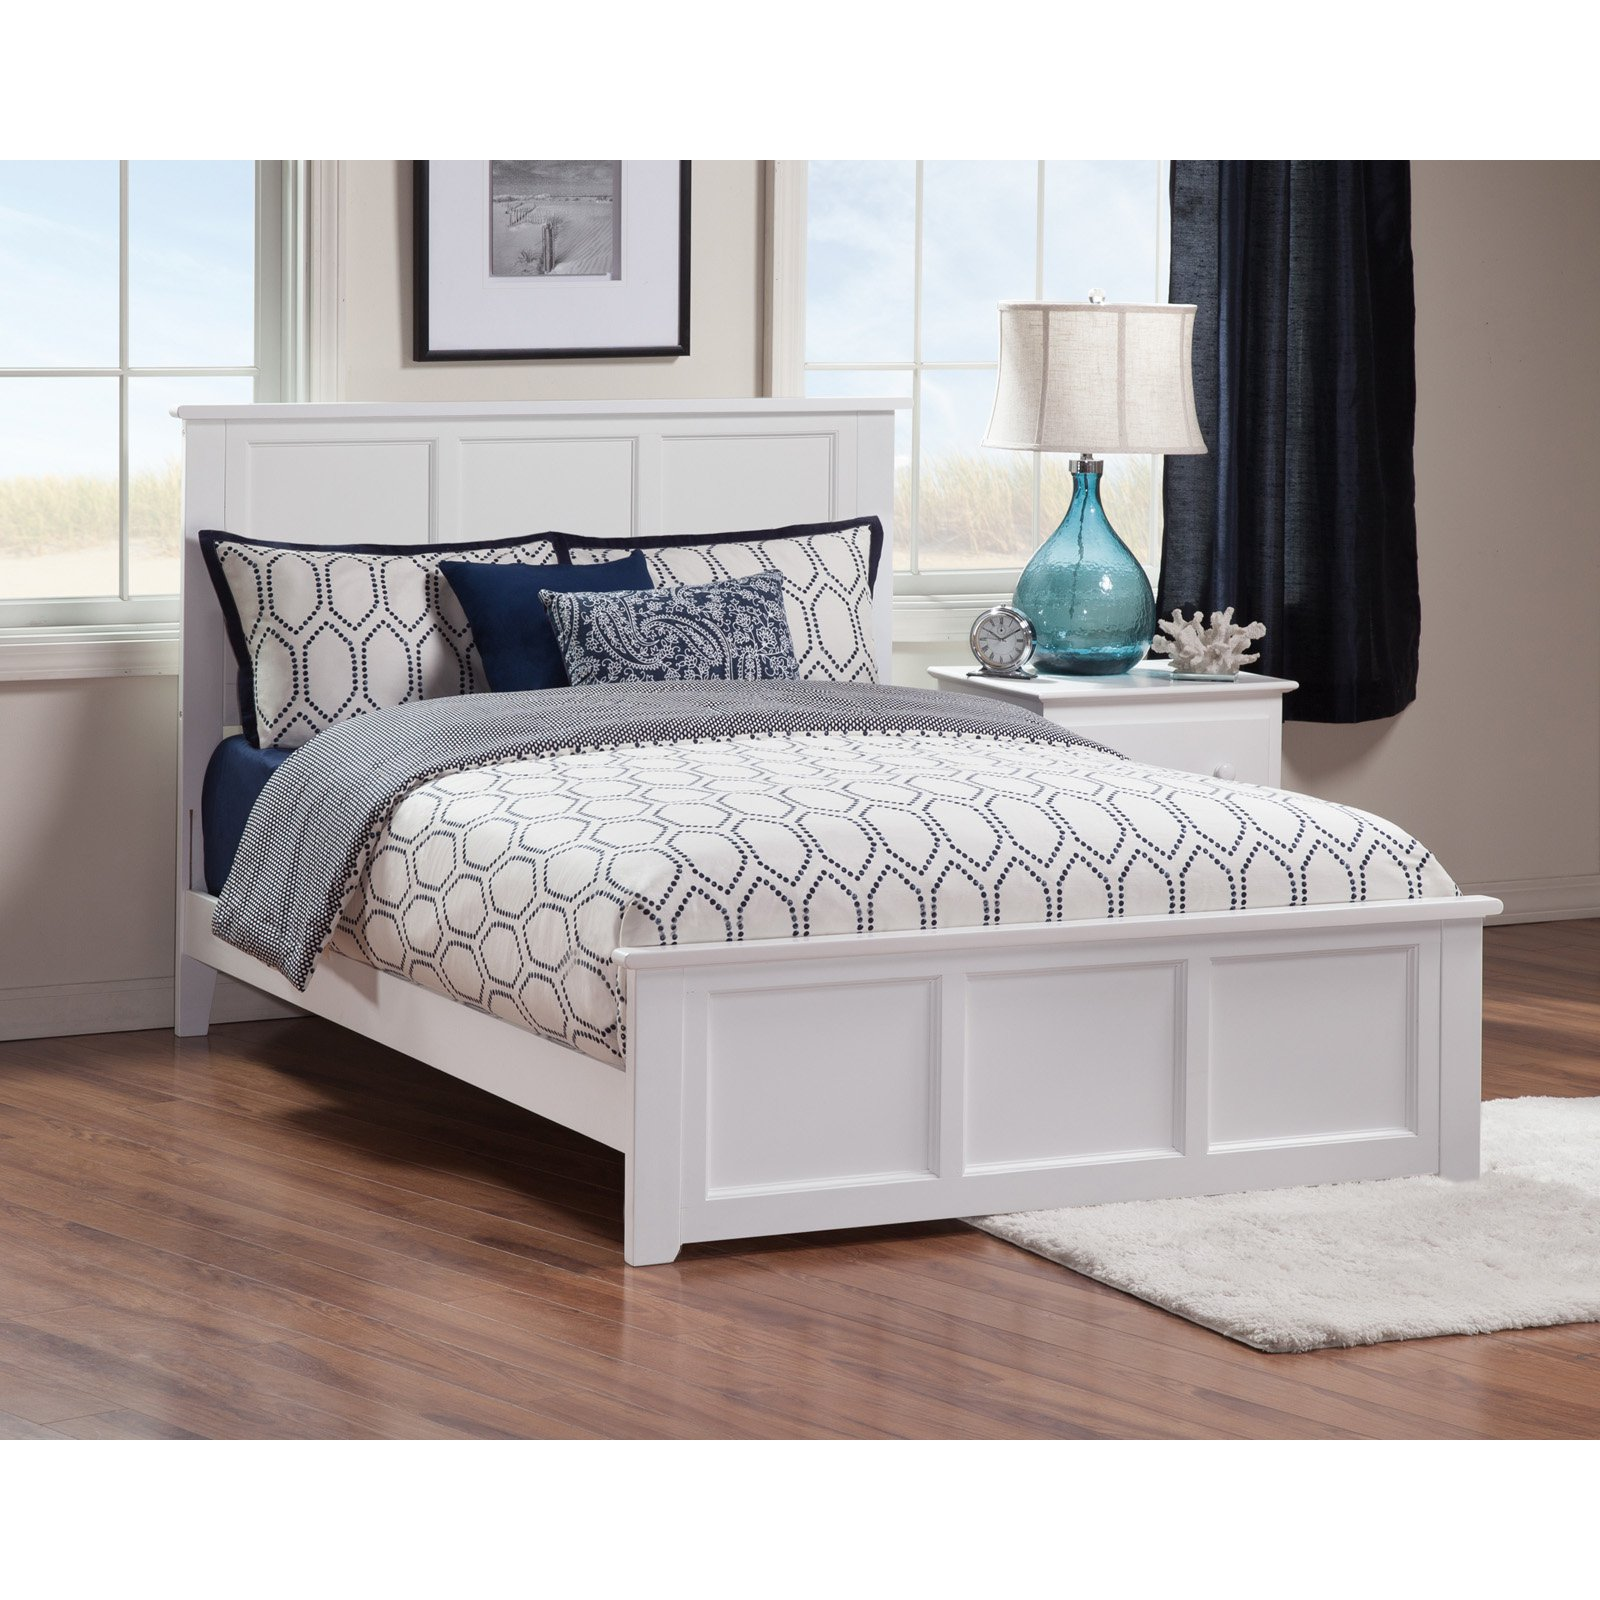 Atlantic Furniture Madison Bed with Matching Footboard by Atlantic Furniture